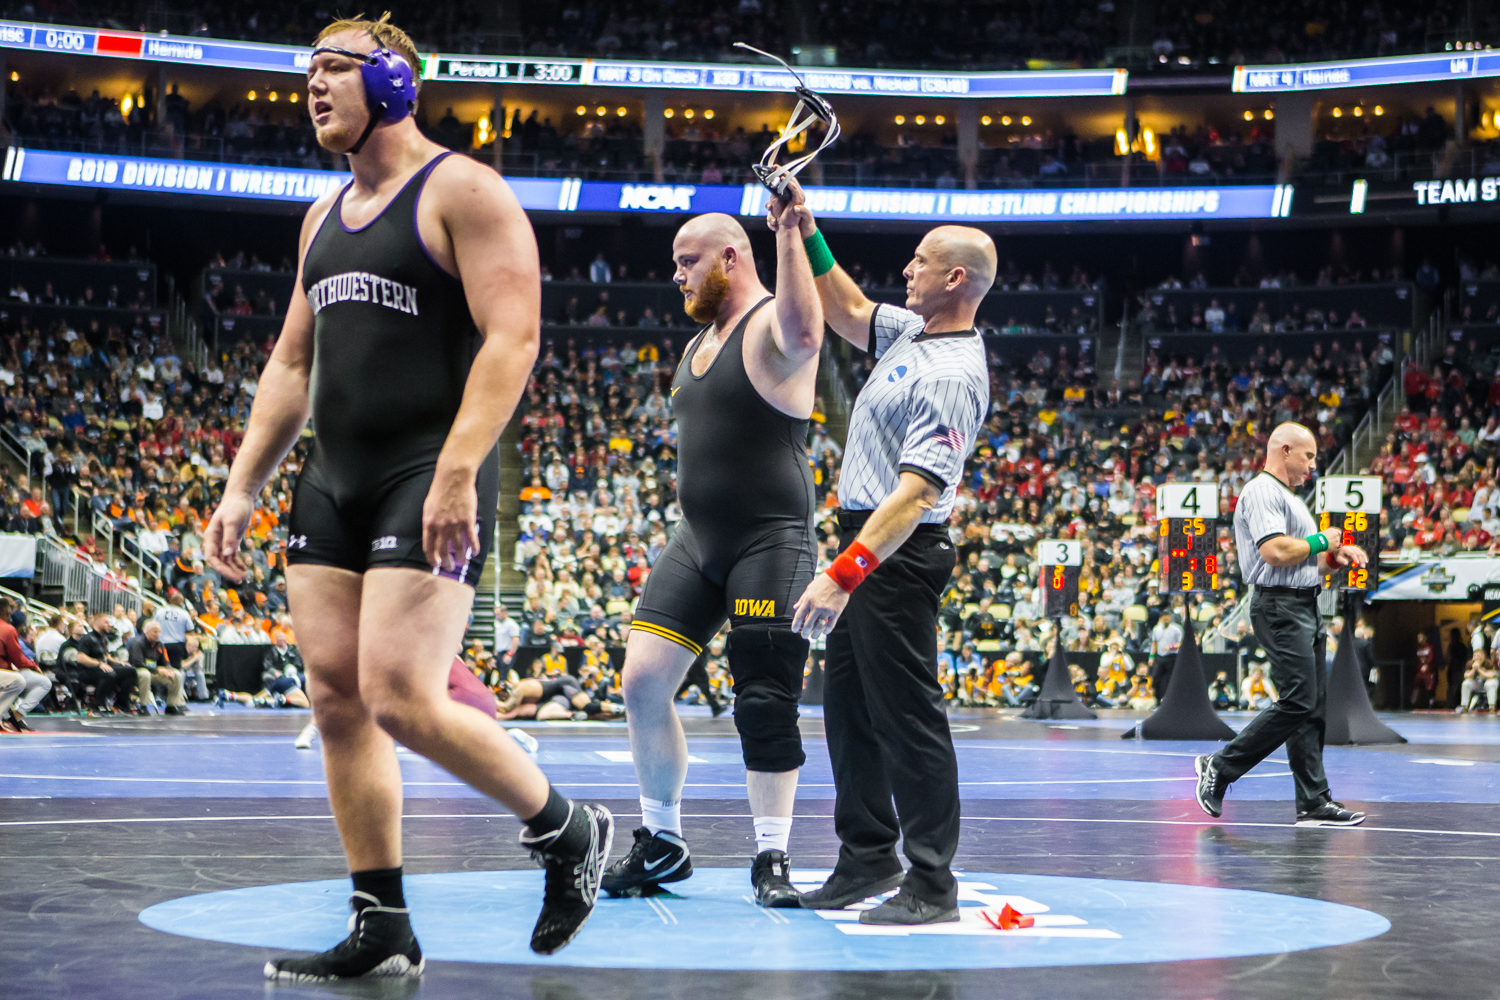 Iowa%E2%80%99s+285-pound+Sam+Stoll+defeats+Northwestern%E2%80%99s+Conan+Jennings+during+the+second+session+of+the+2019+NCAA+D1+Wrestling+Championships+at+PPG+Paints+Arena+in+Pittsburgh%2C+PA+on+Thursday%2C+March+21%2C+2019.+Stoll+won+by+decision%2C+1-0.